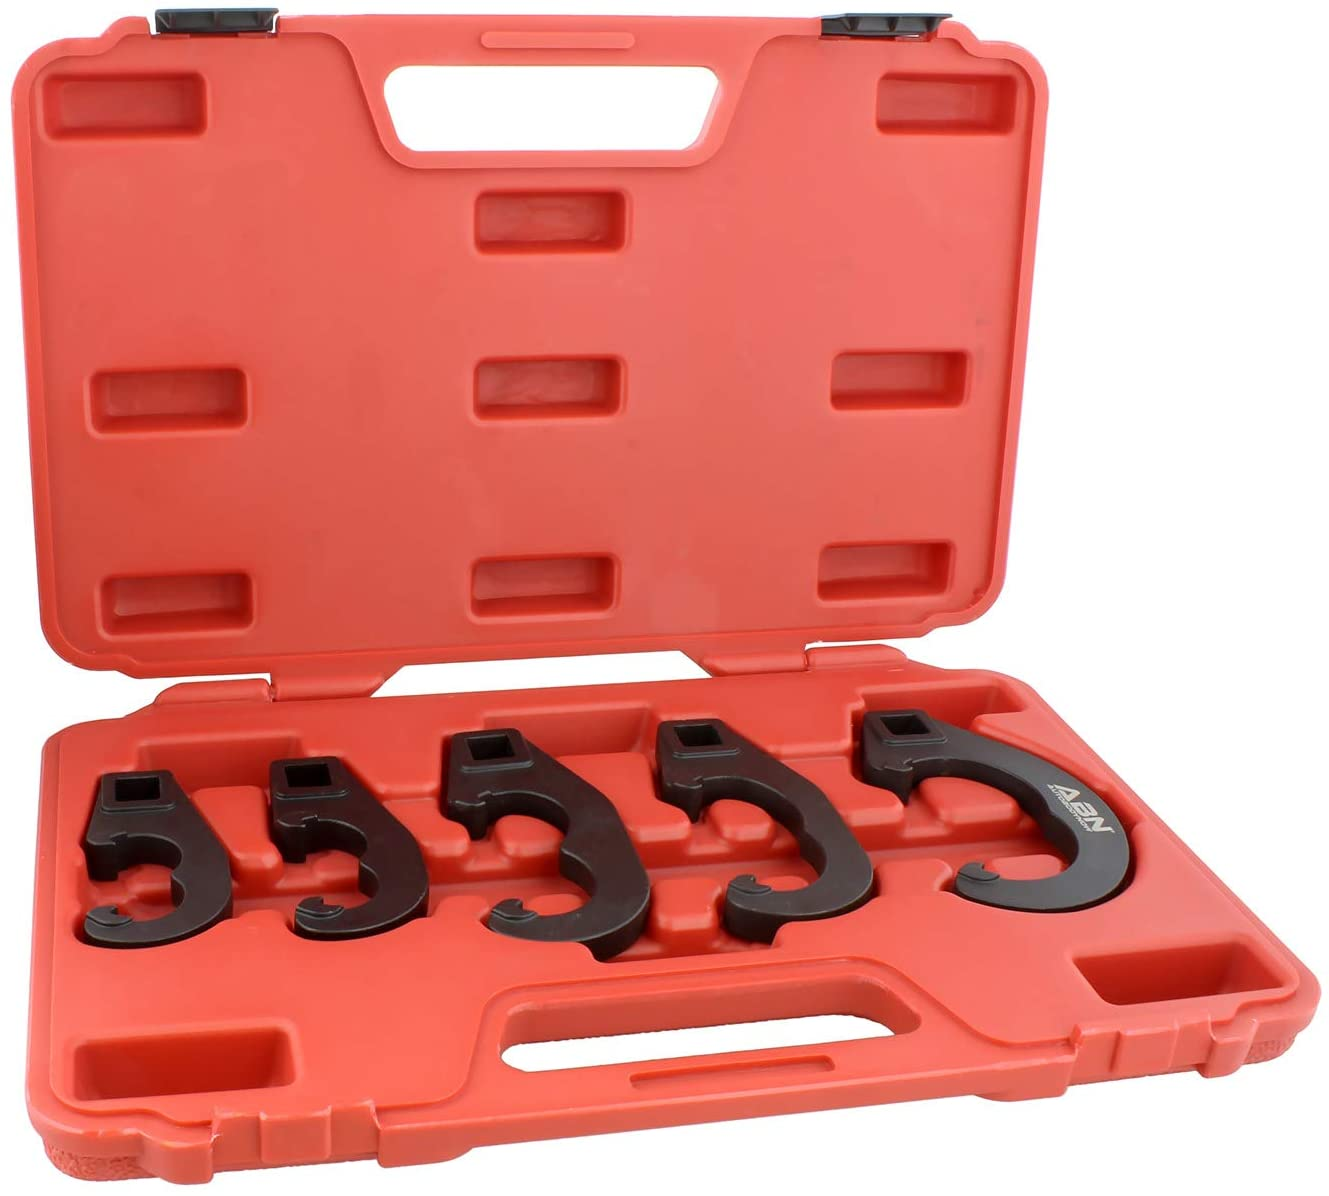 ABN Tie Rod and Pitman Arm Adjusting Tool Set – 5 Pc Tie Rod Adjusting Tool Kit and Heavy Duty Pitman Arm Puller Set